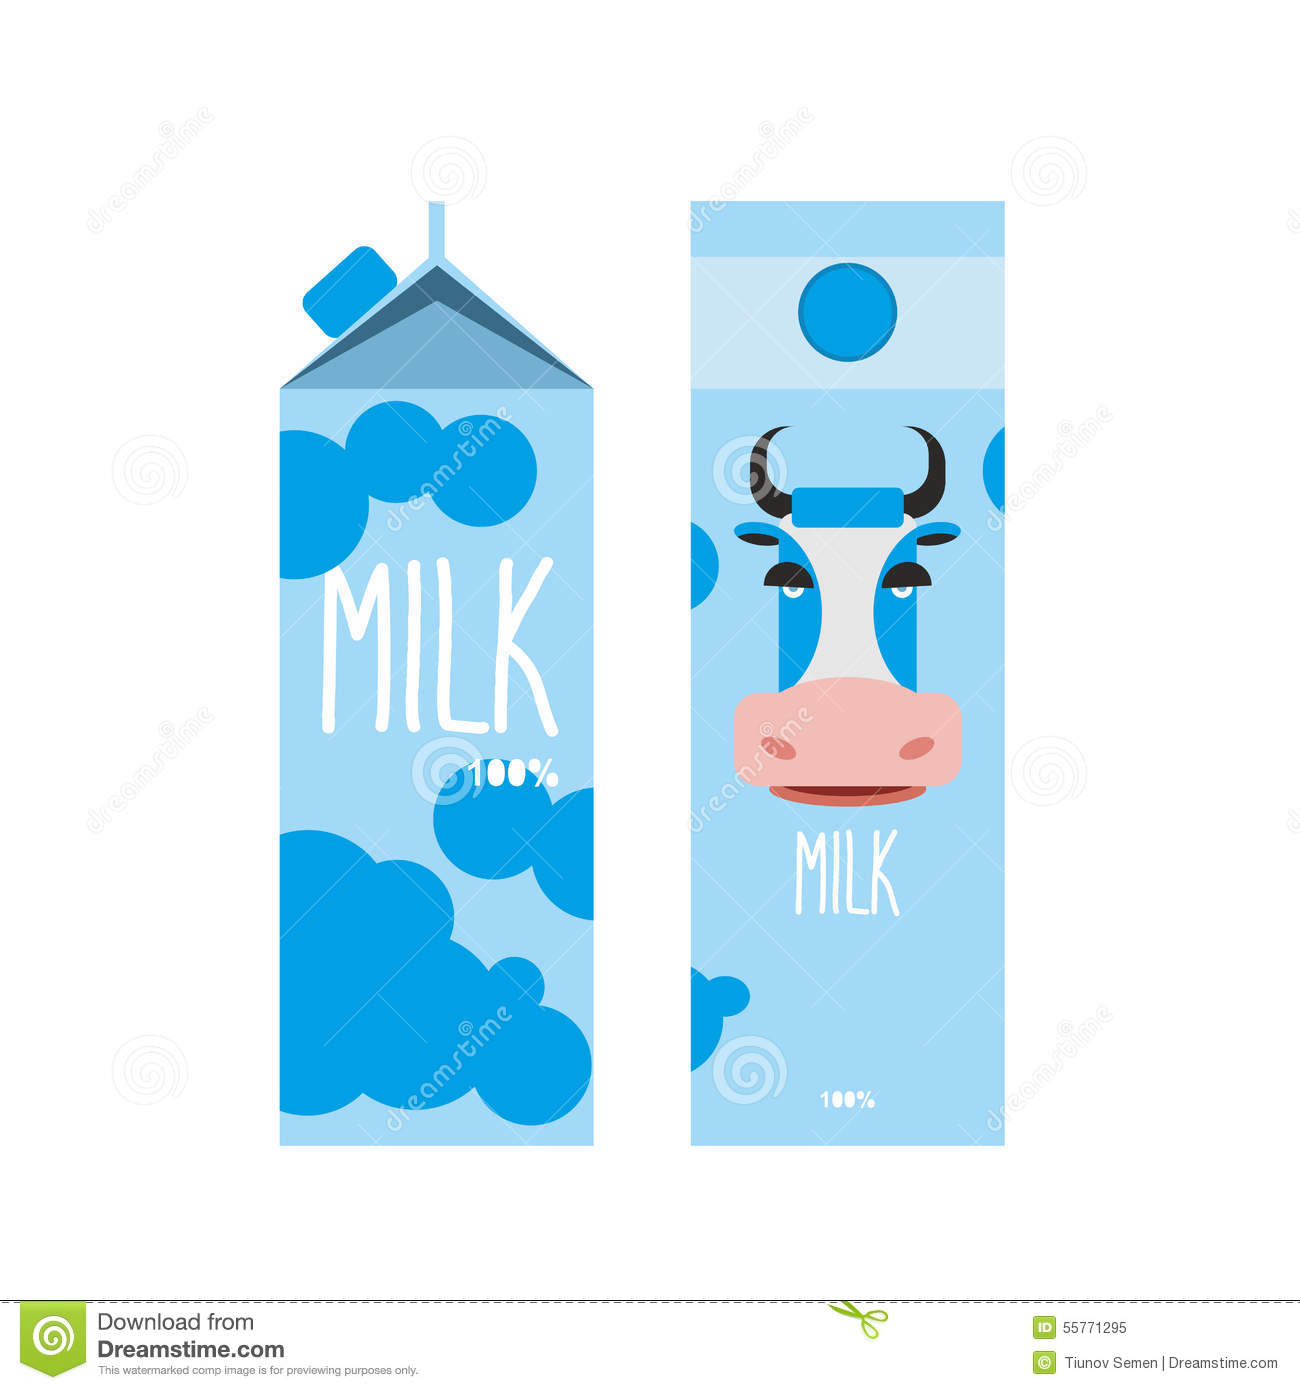 Milk Carton Template Design